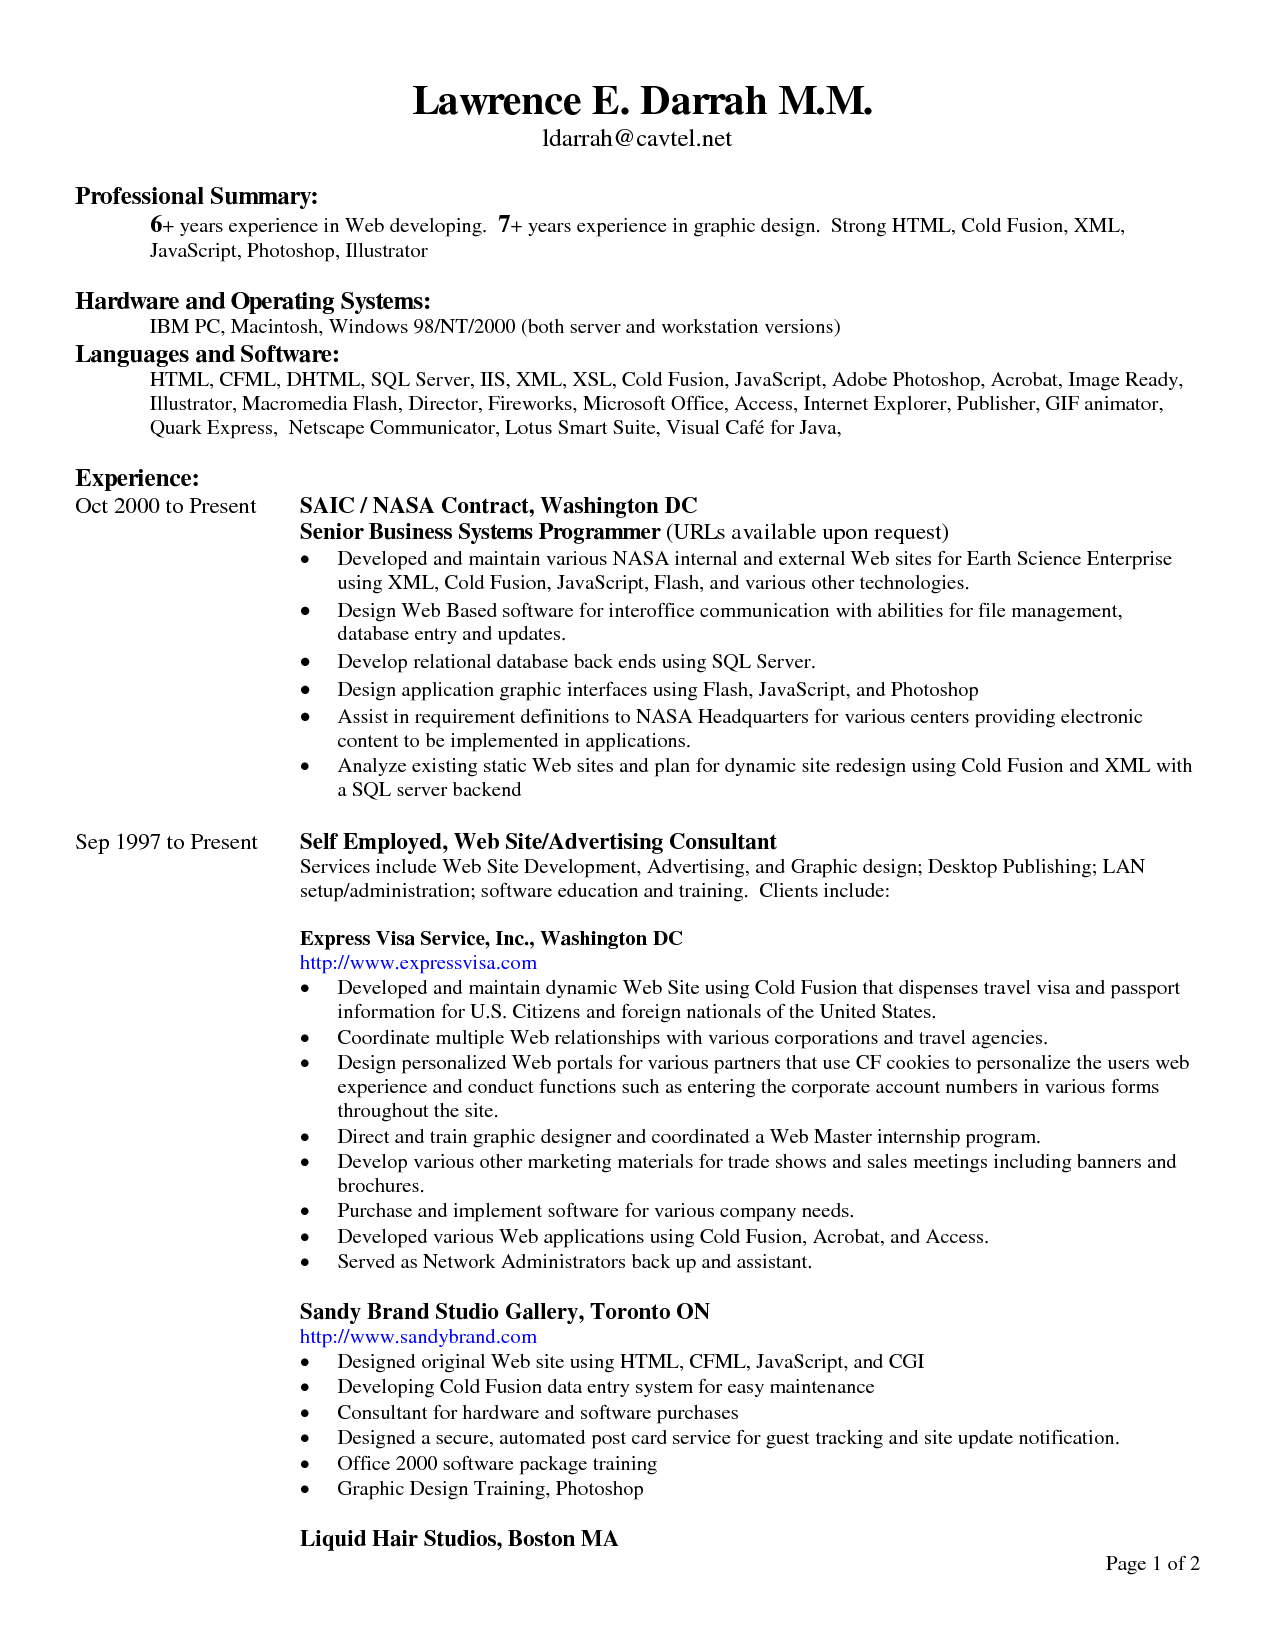 sample resume headings resume header designs images professional resume header examples